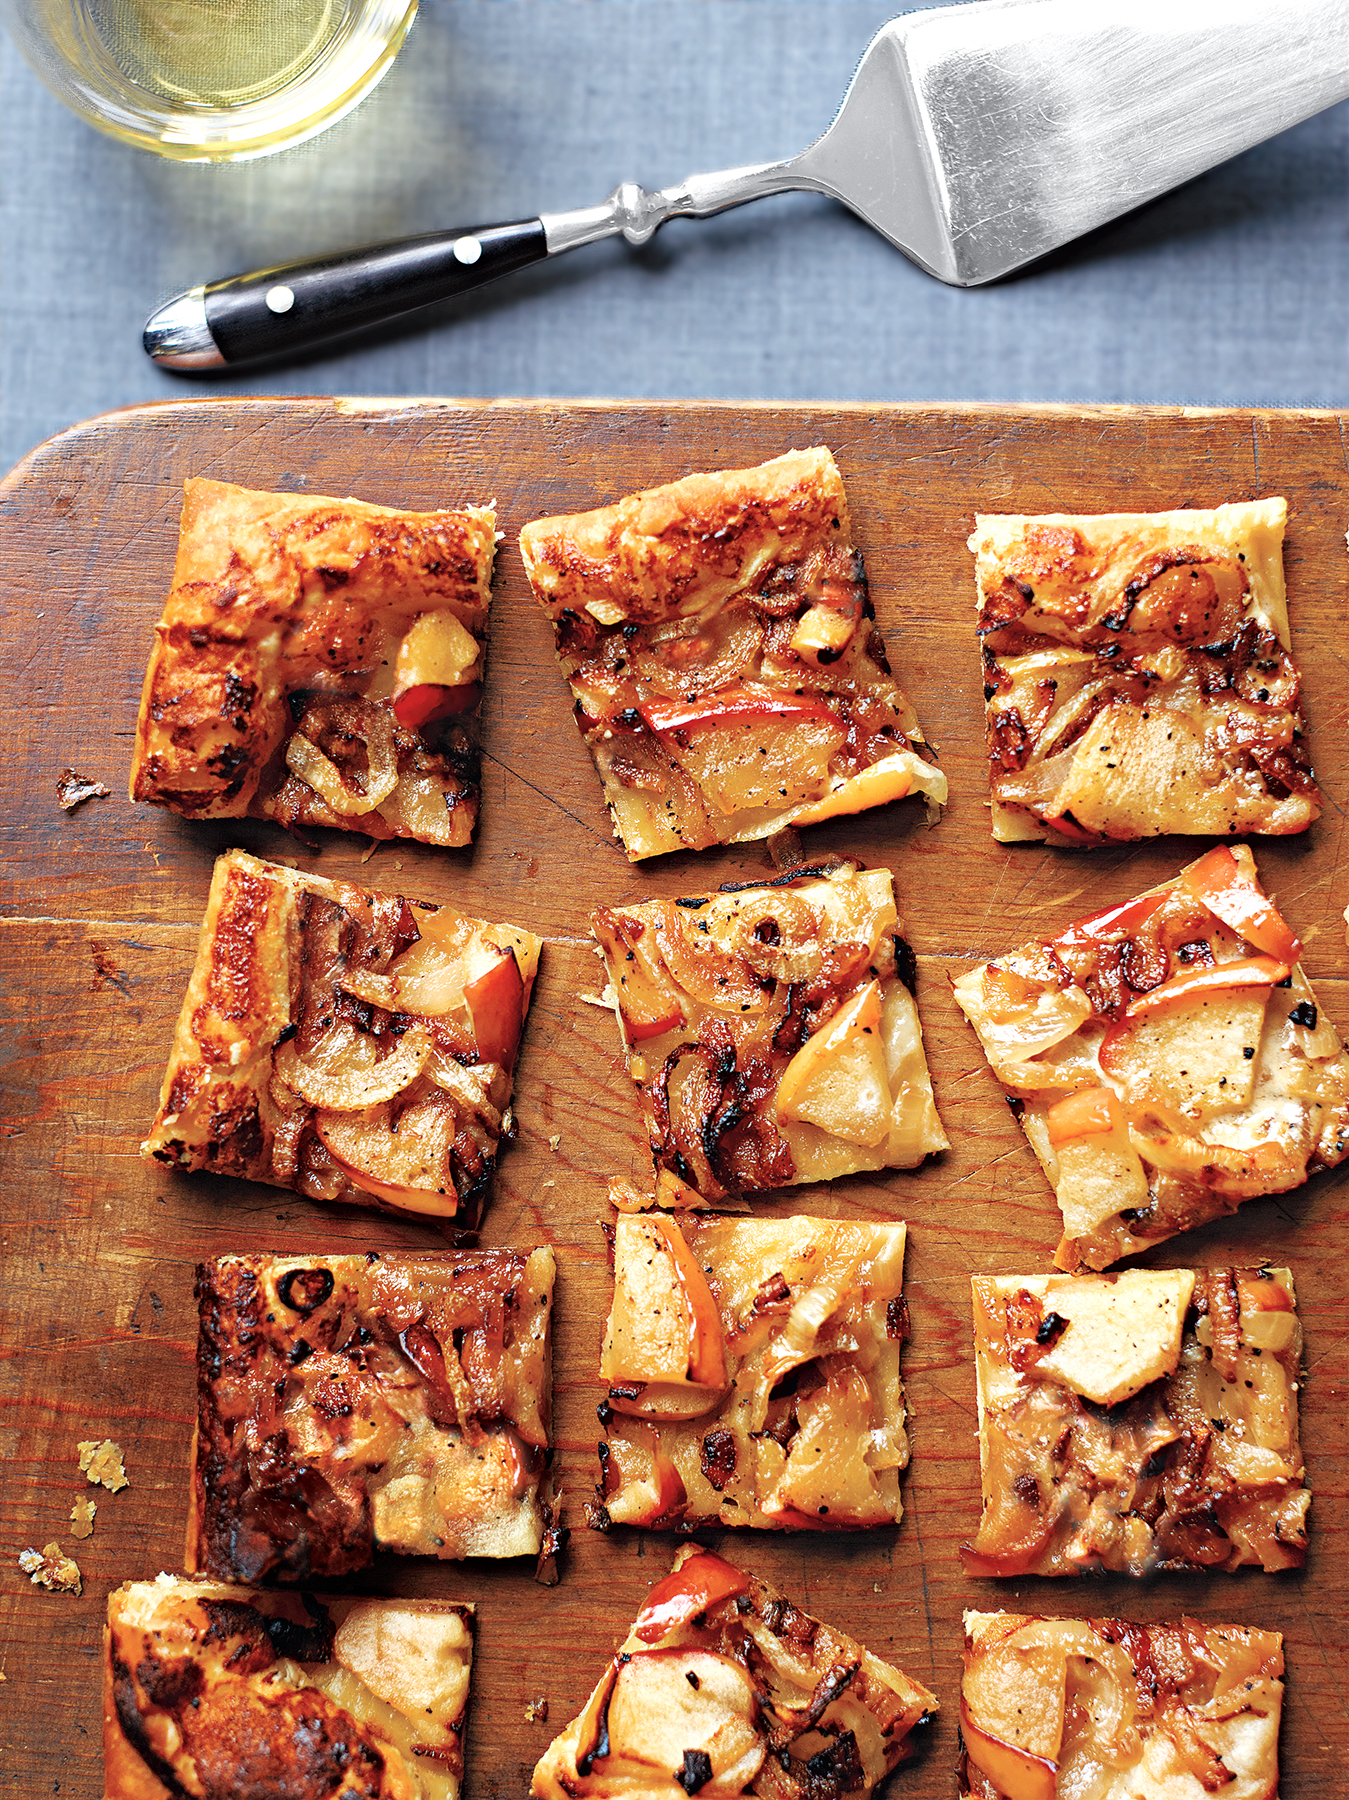 Clone of Caramelized Onion Tarts With Apples